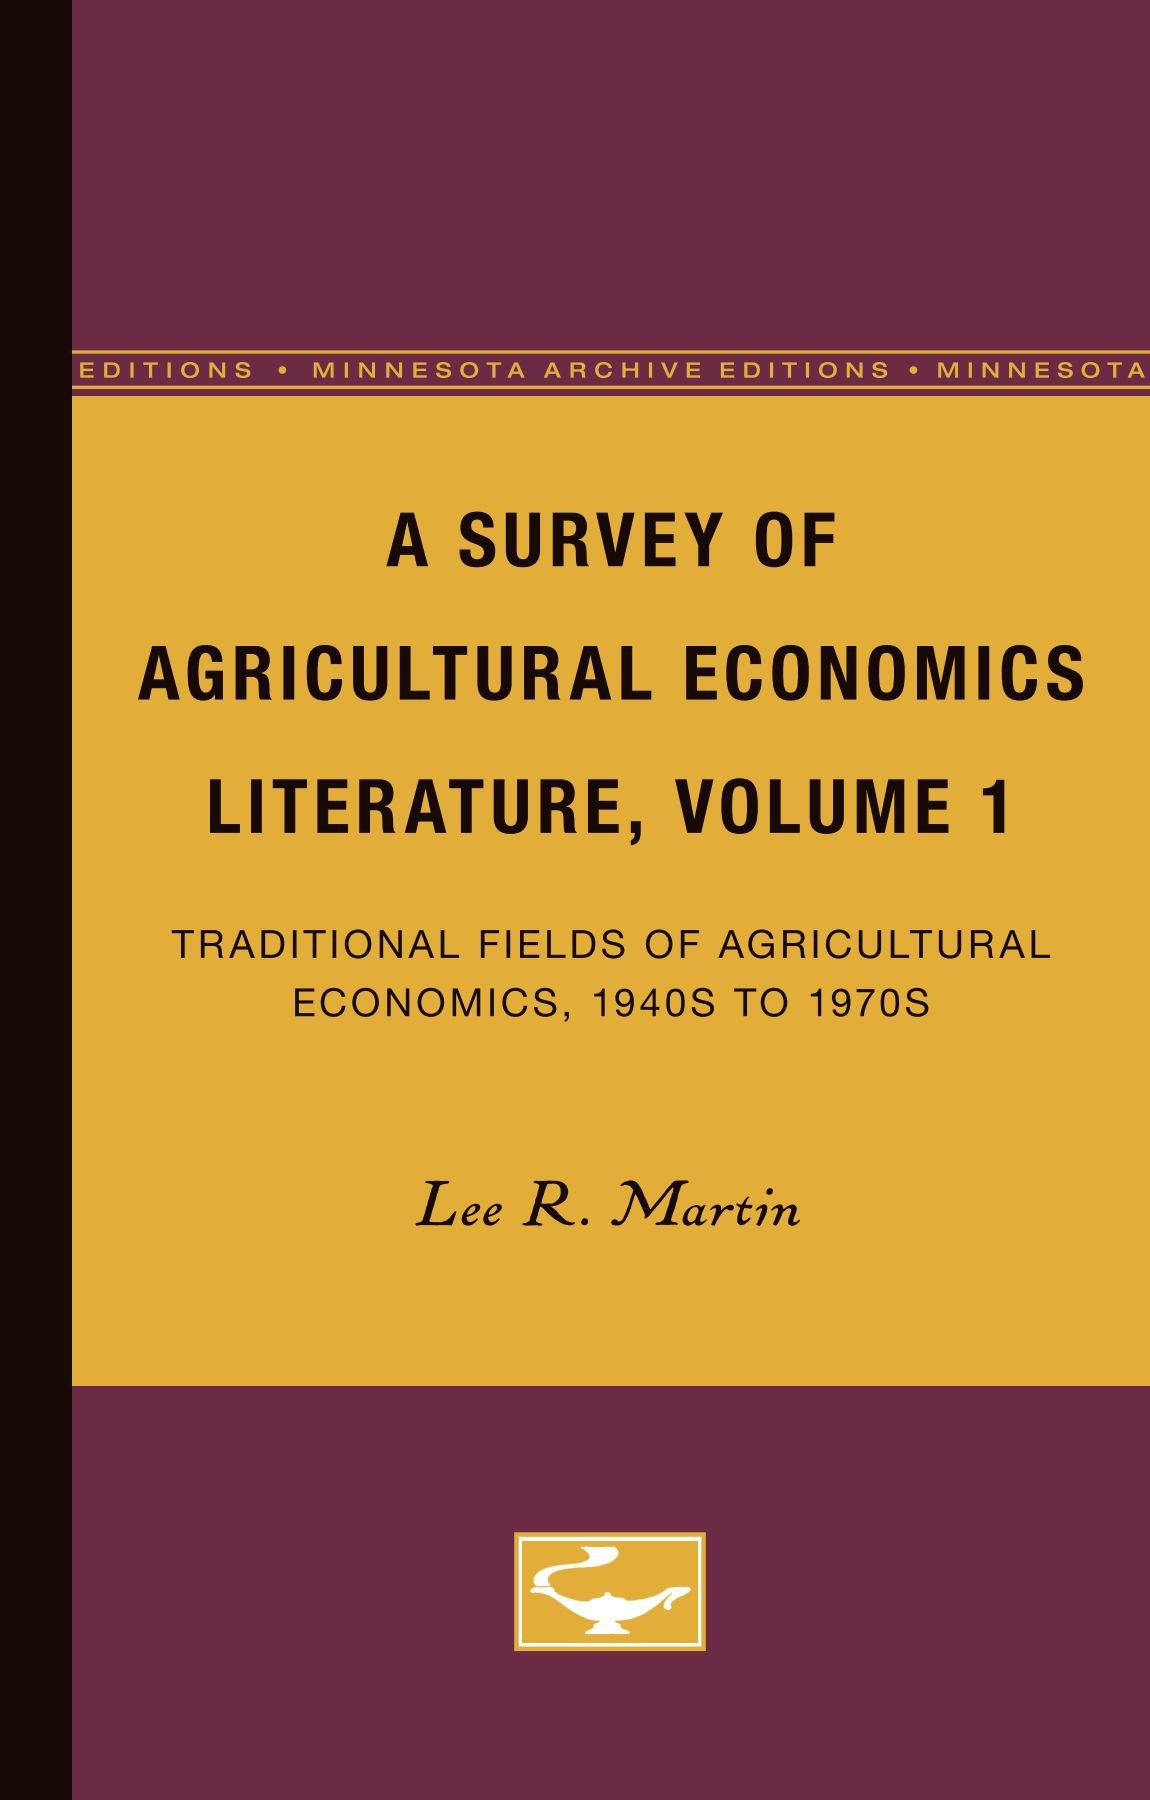 A Survey of Agricultural Economics Literature, Volume 1: Traditional Fields of Agricultural Economics, 1940s to 1970s